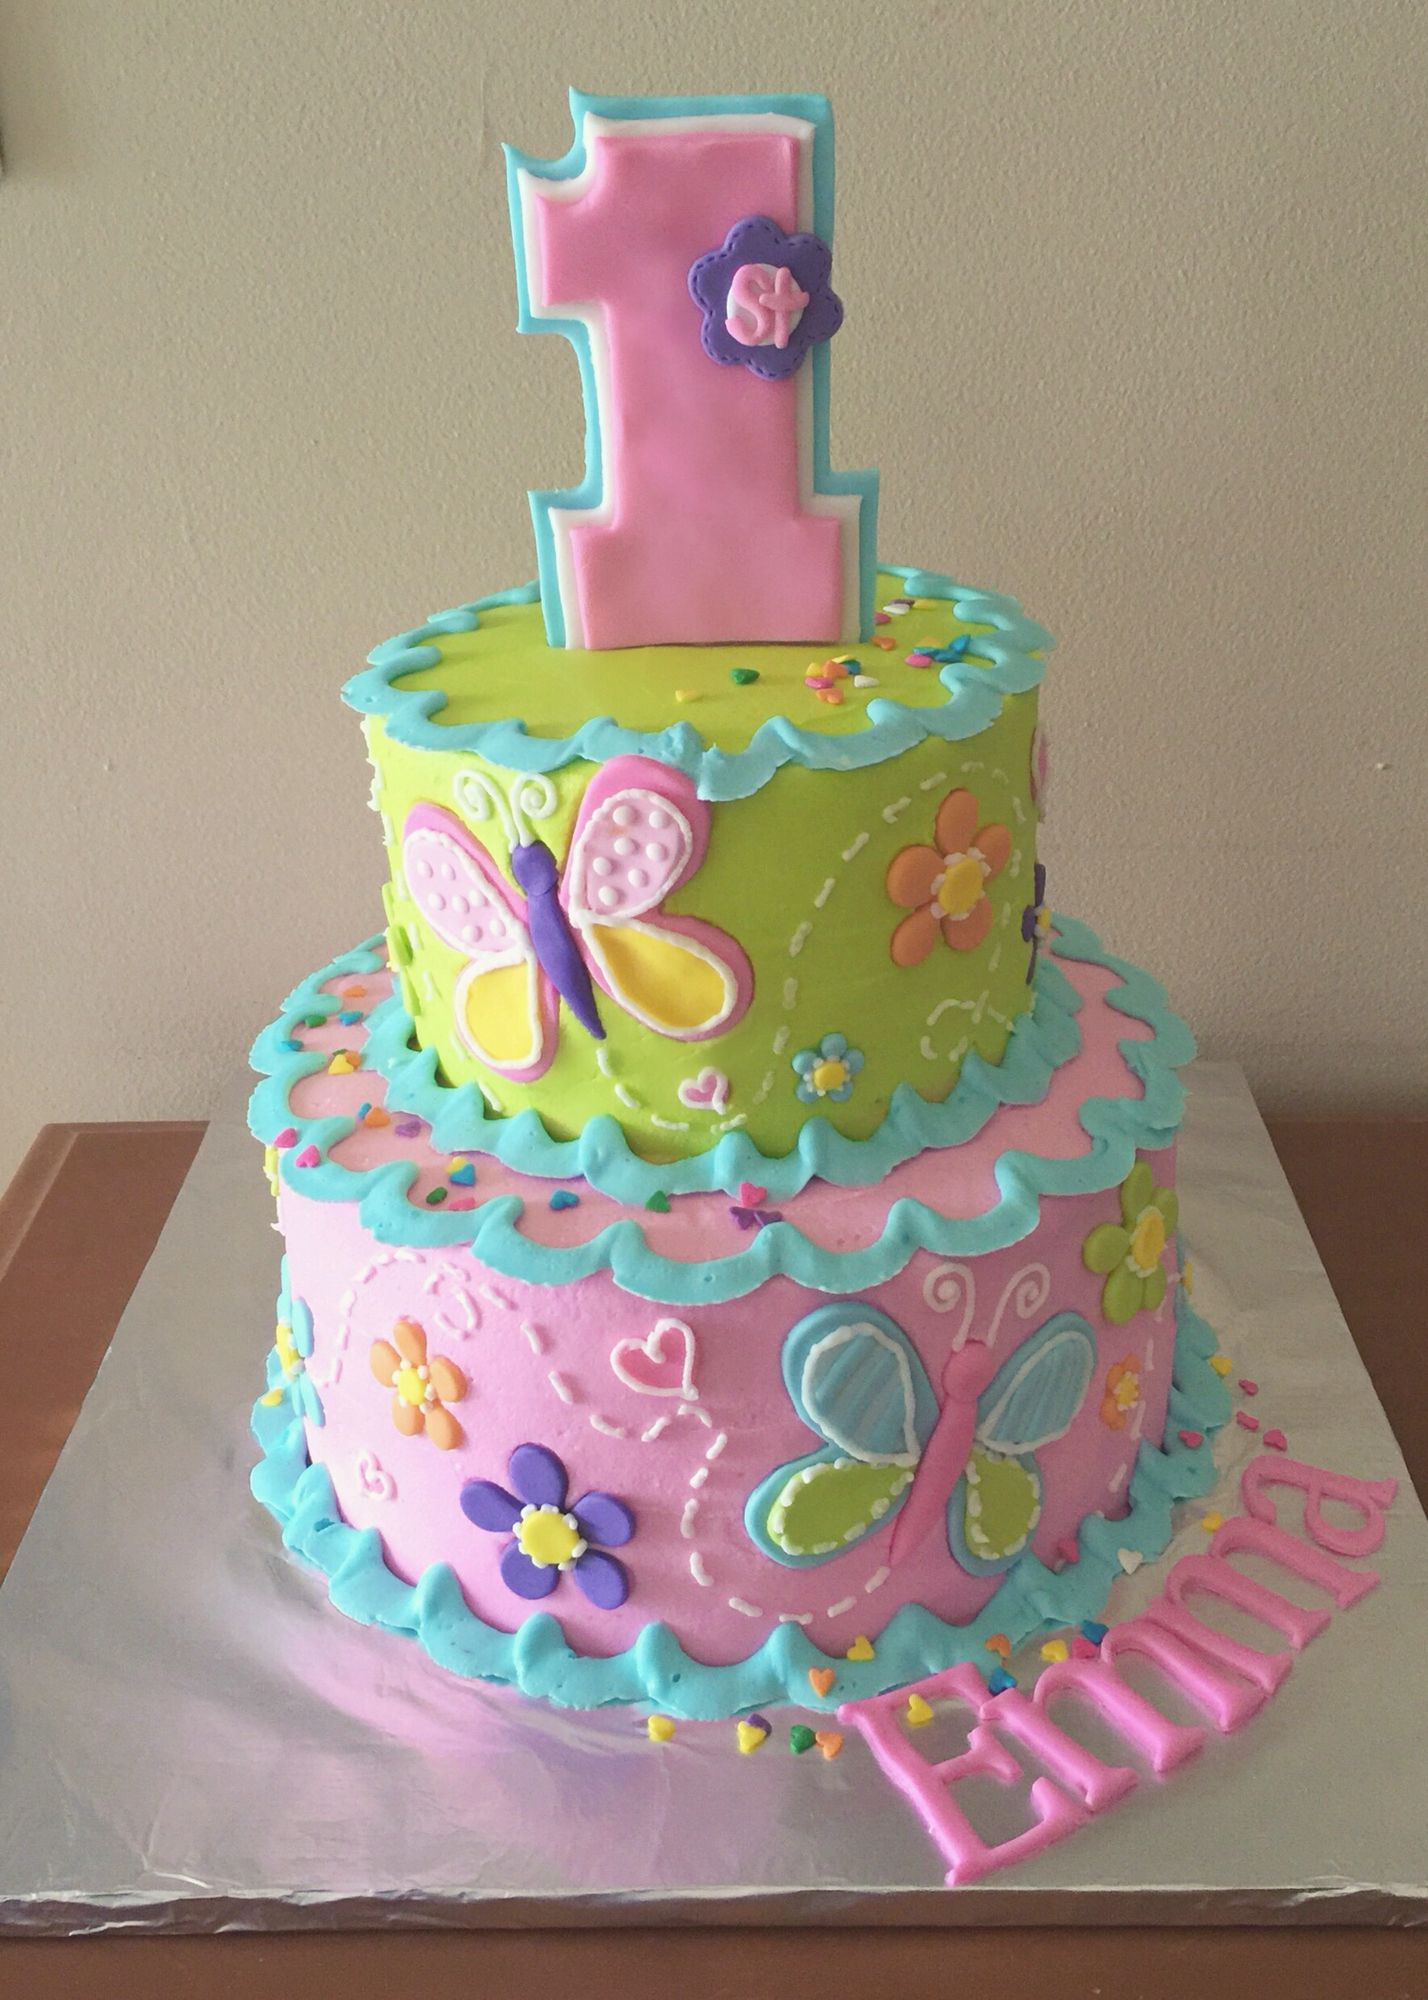 34+ Great Photo of Birthday Cake For Girl